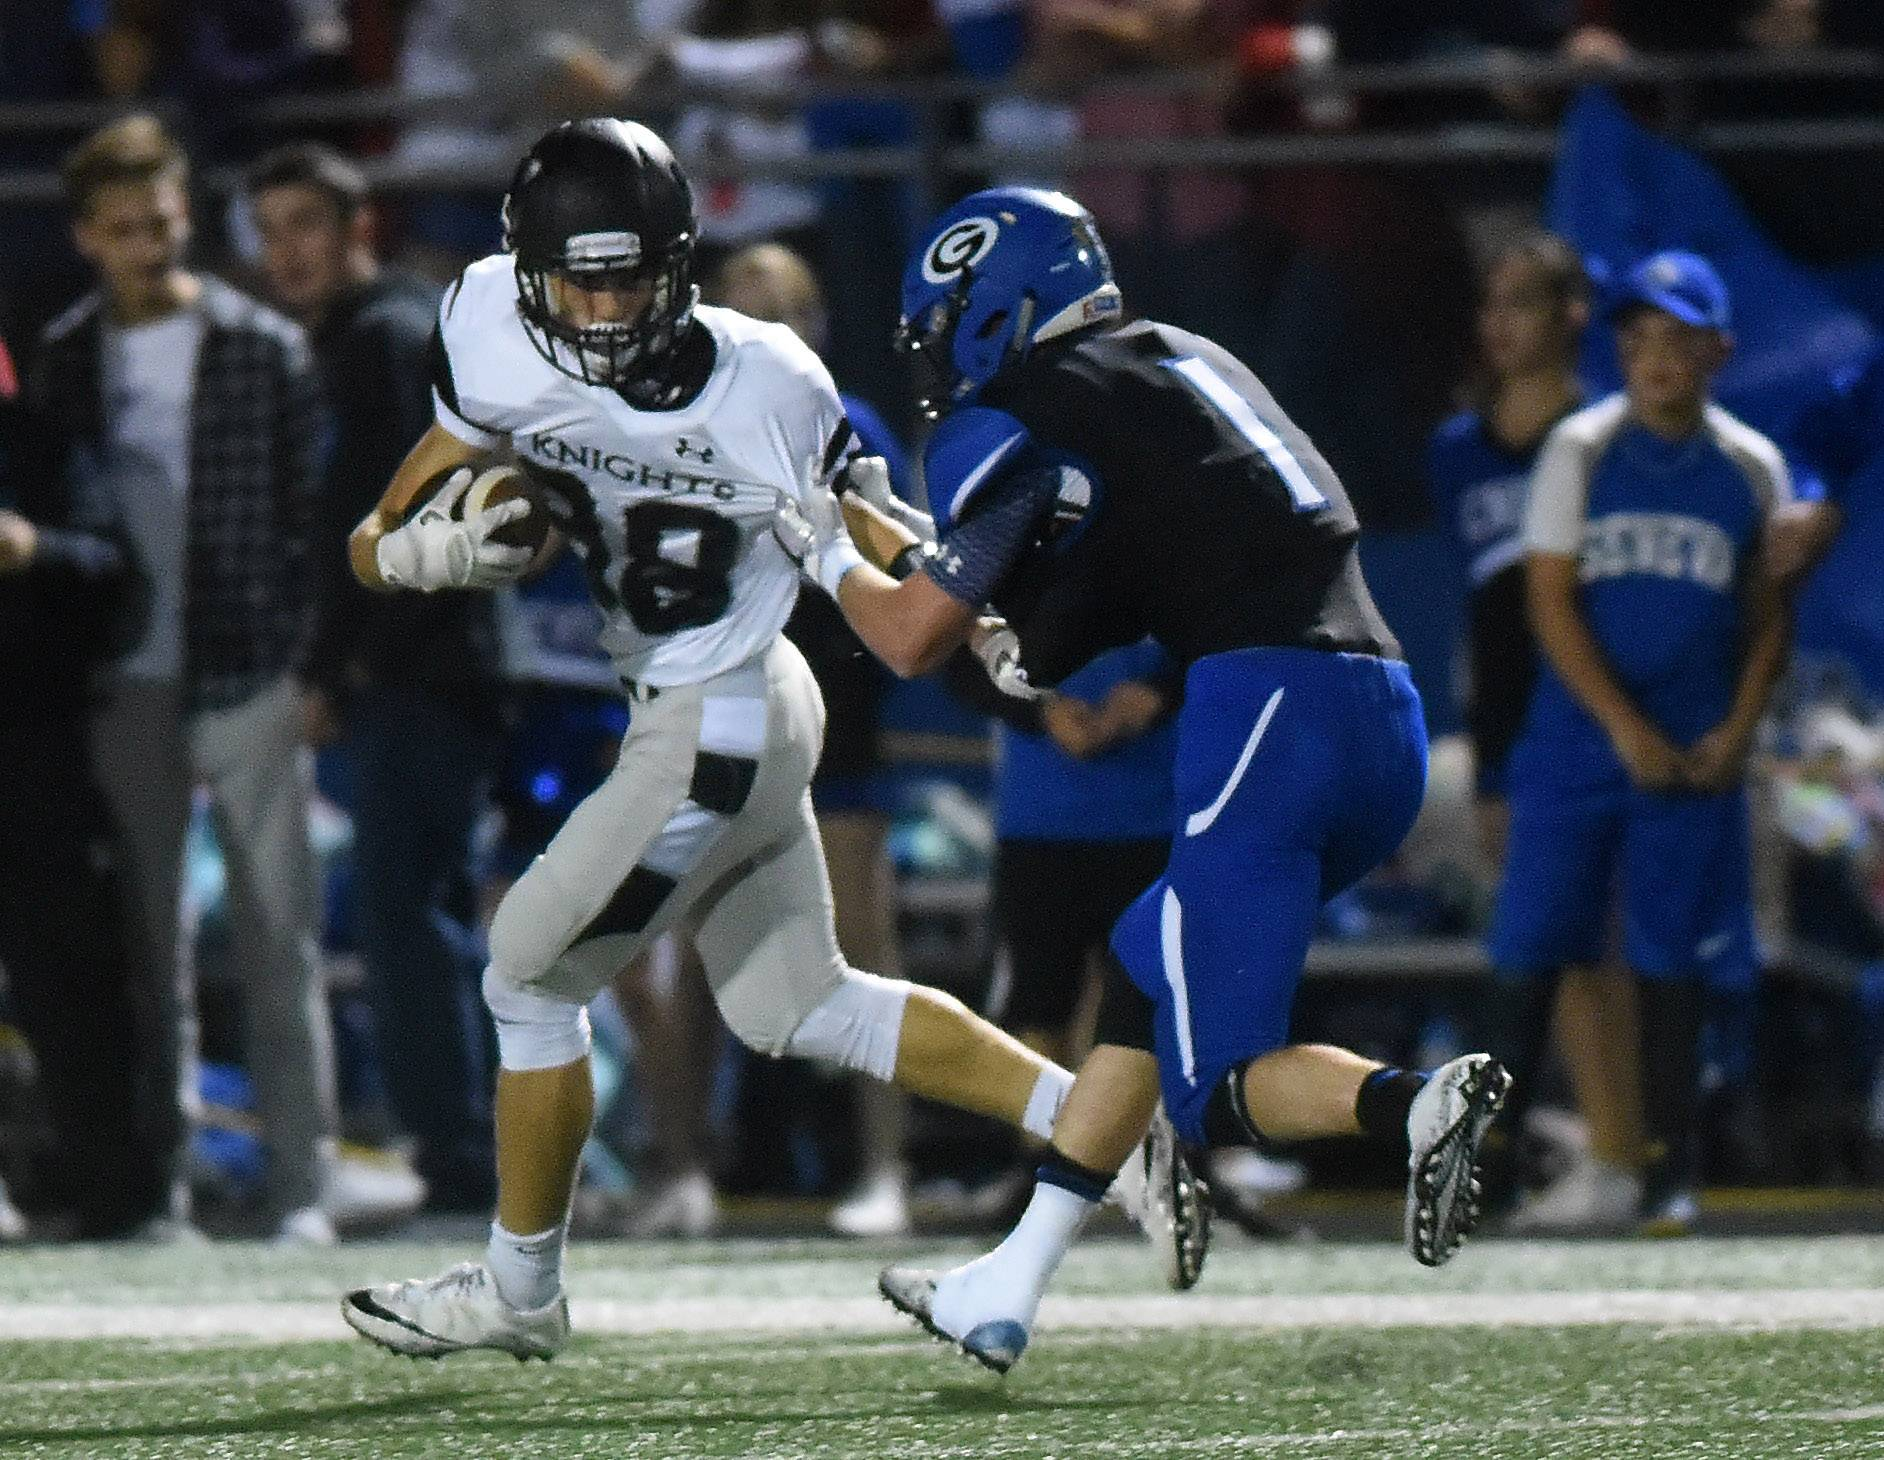 Kaneland's Max Gagne (88) is brought down by Geneva's Ian Hanson (1) after a 48-yard reception during Friday's game in Geneva.